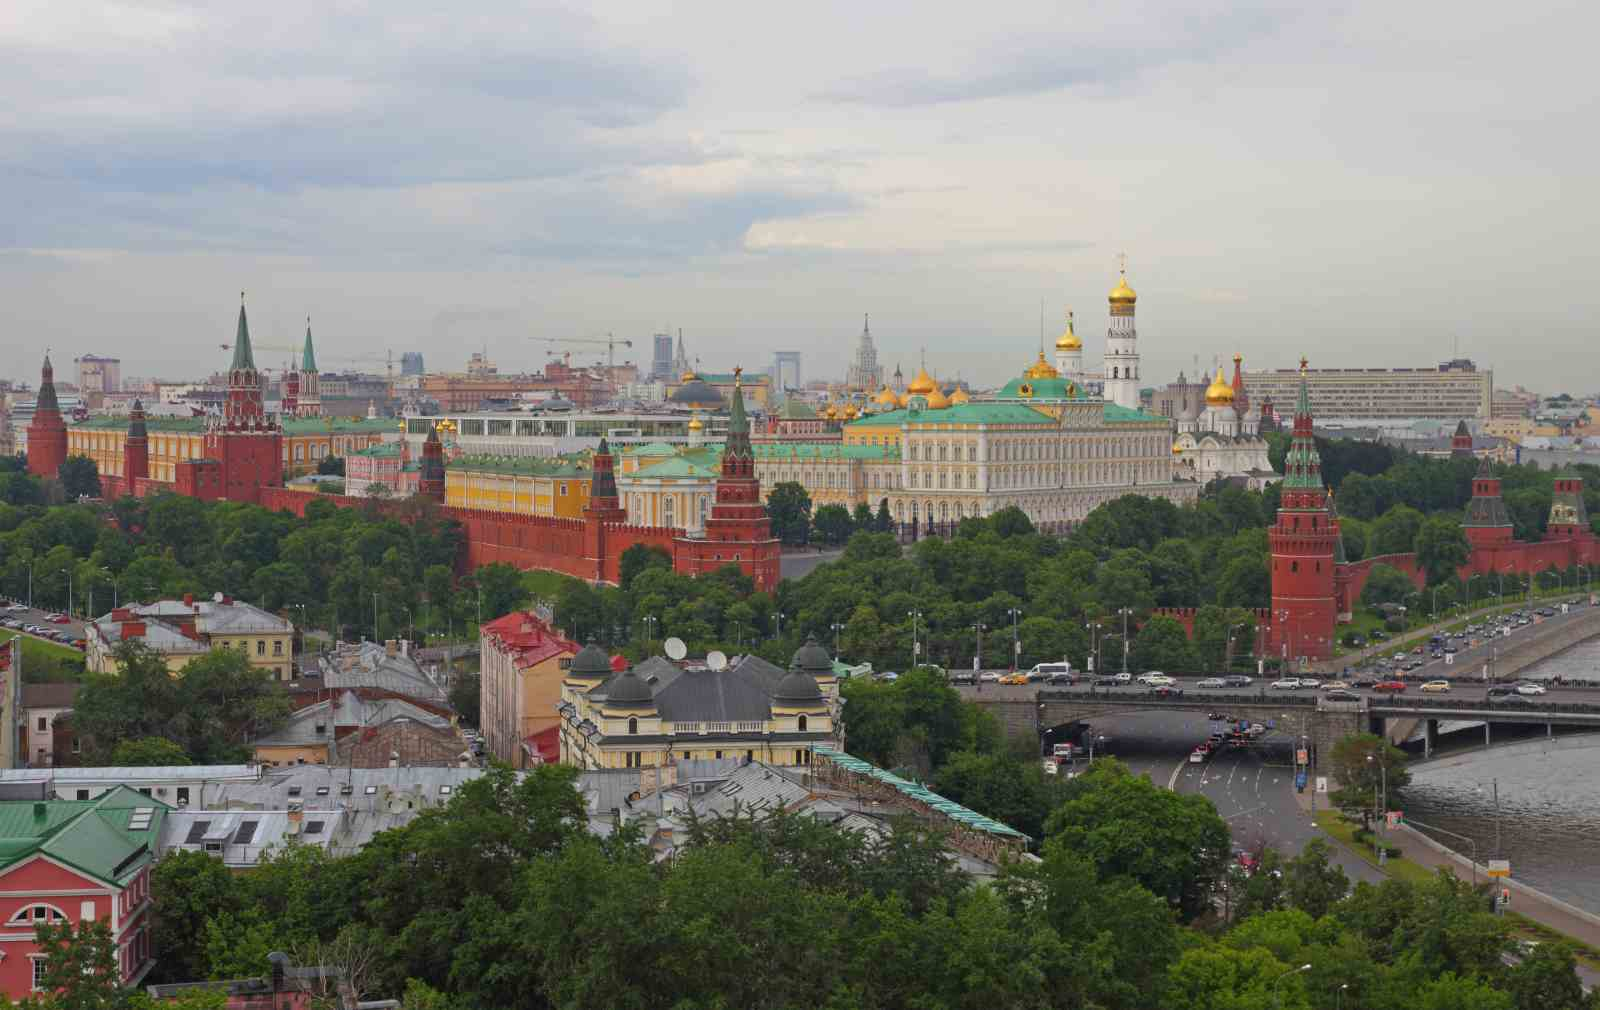 Moscow, Russia. General view of the Moscow Kremlin.